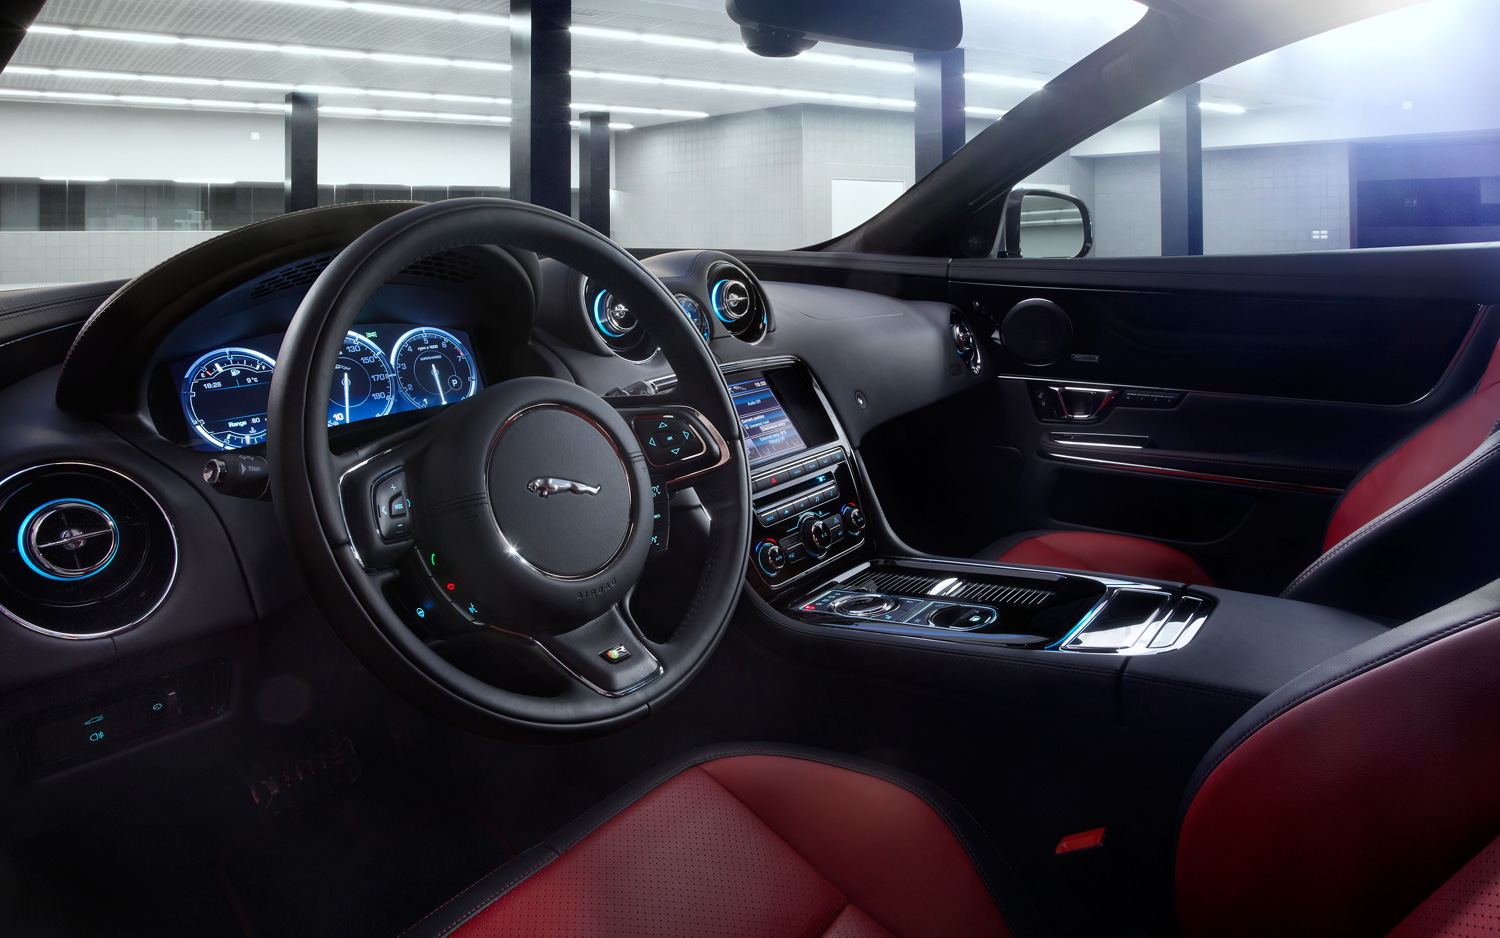 2014 Jaguar XJR Interior